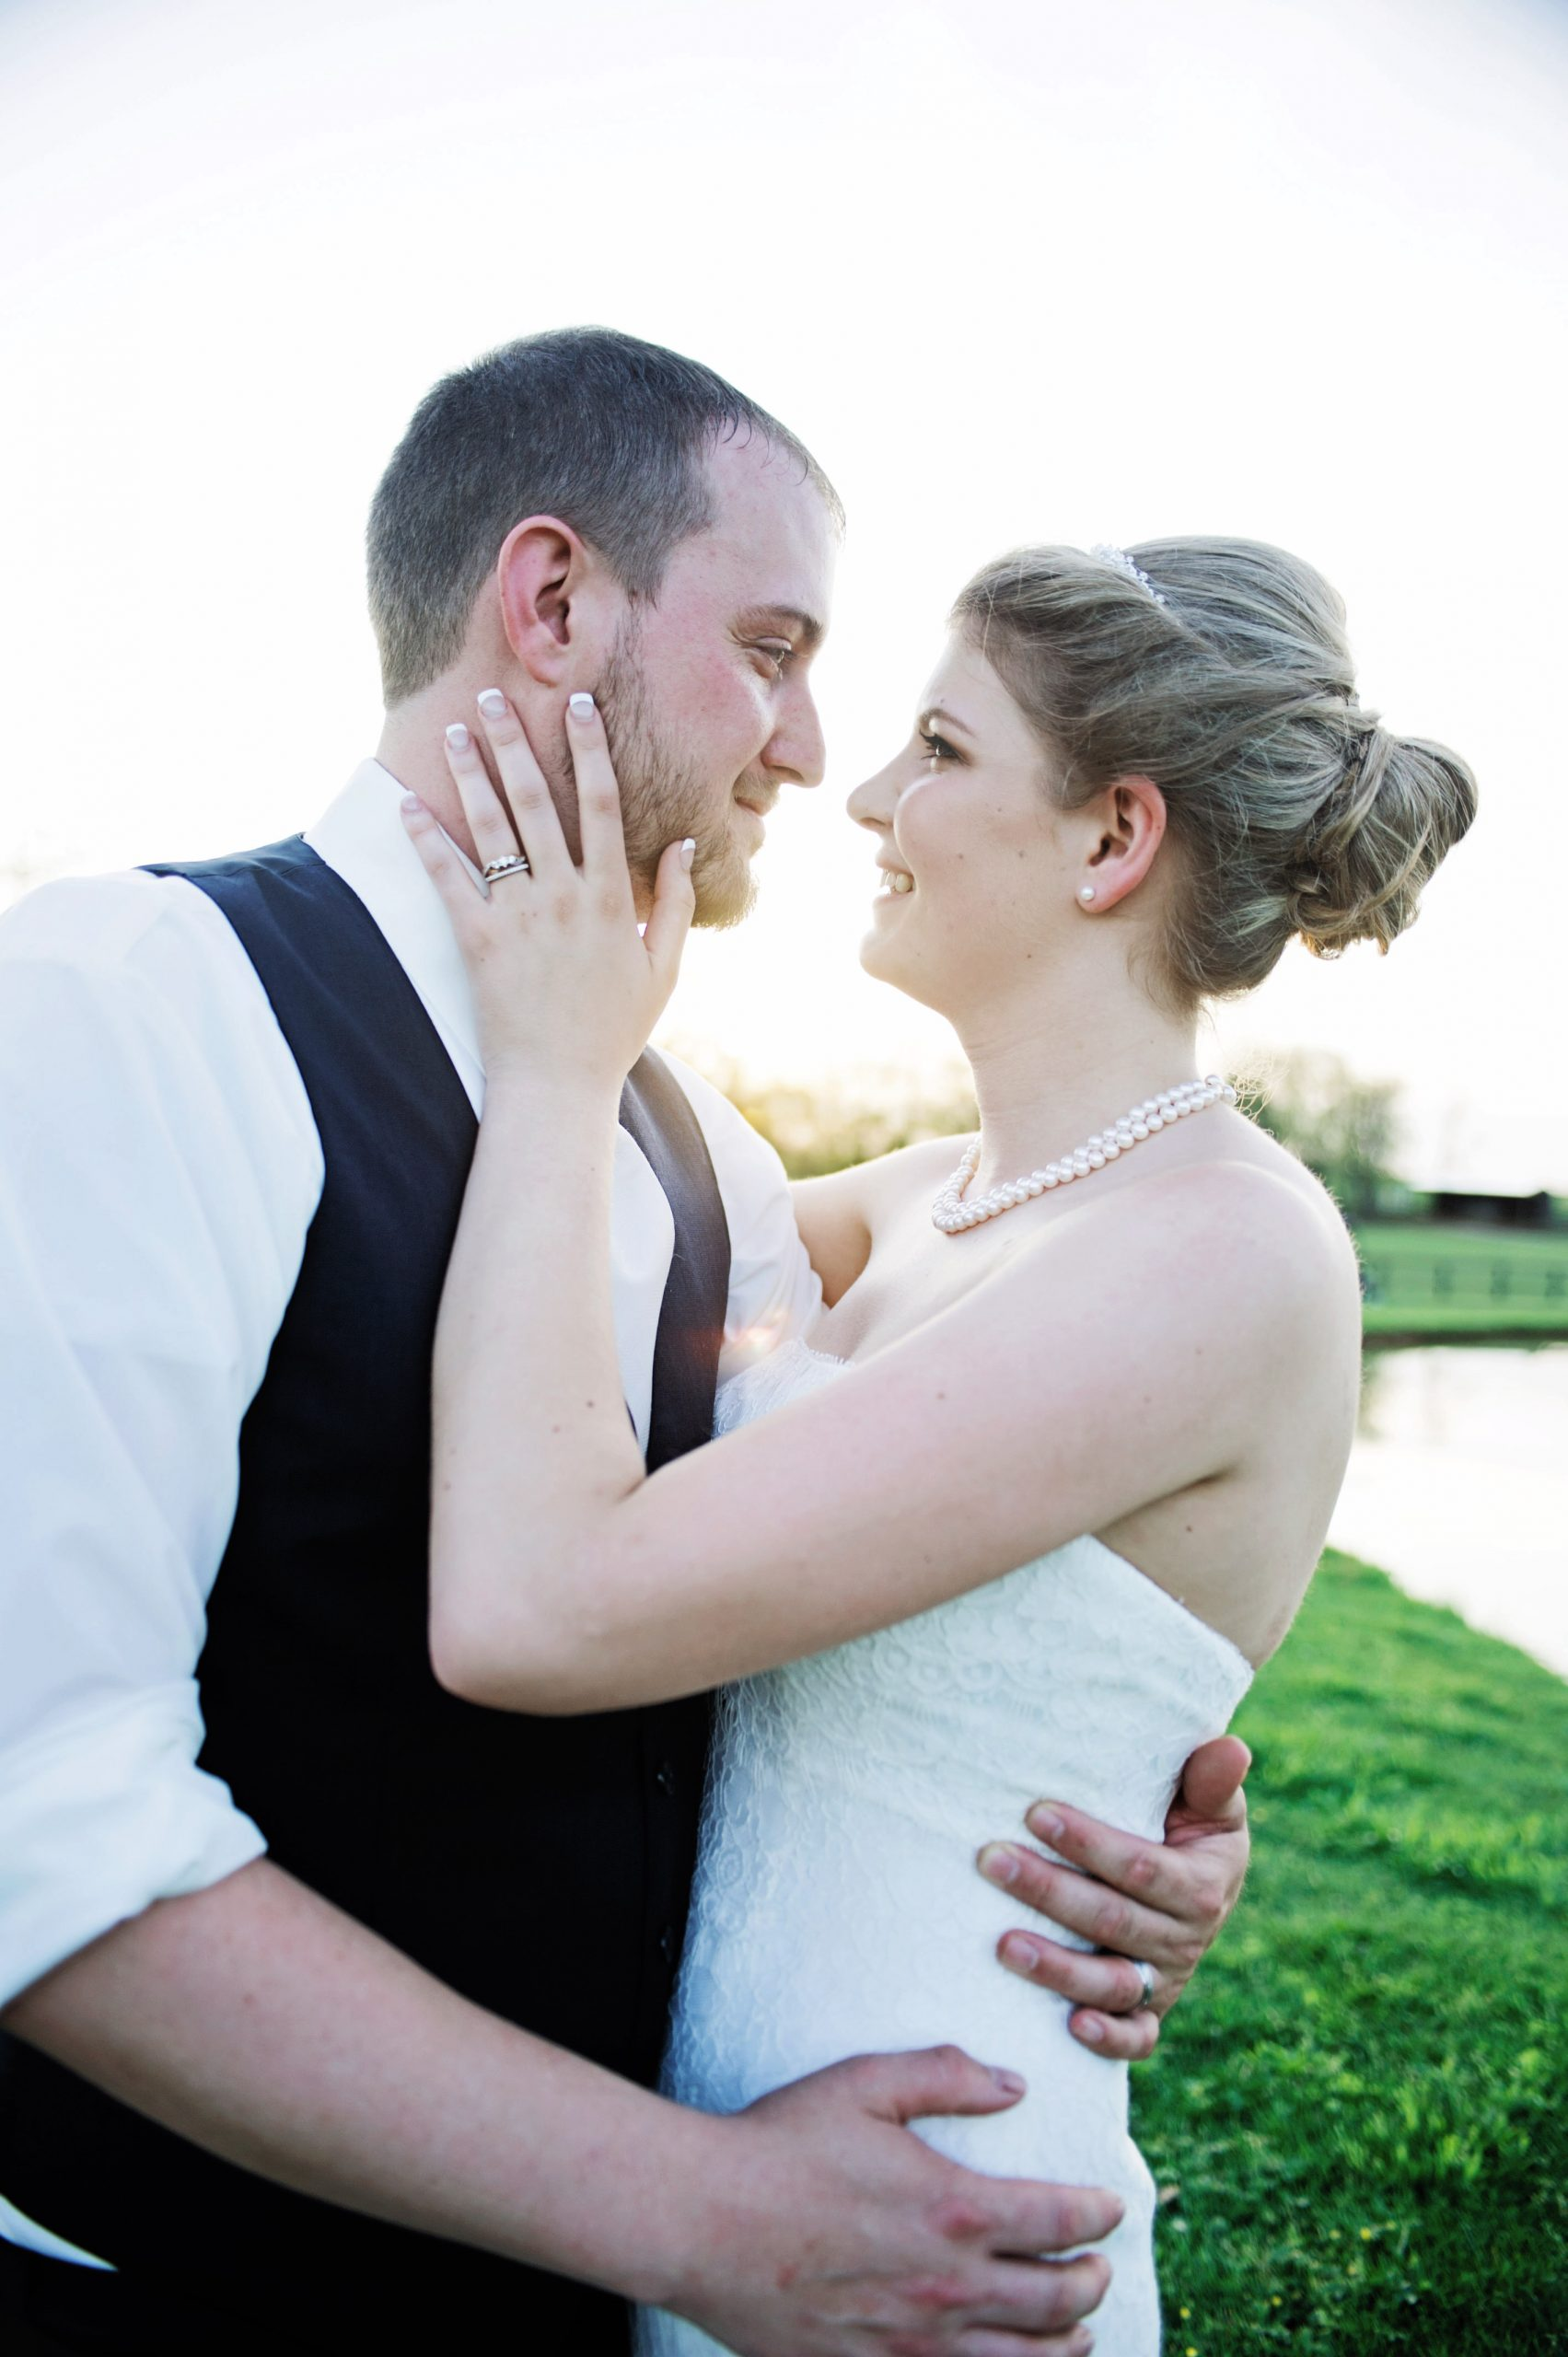 A close up shot of Kady and Ricky showcases her gorgeous ring and clasic pearl necklace at Lakeview Farms in York, PA. Lovefusion Photography did a wonderful job of showing the infatuation the two lovebirds have for each other. Featured on Dream Weddings.